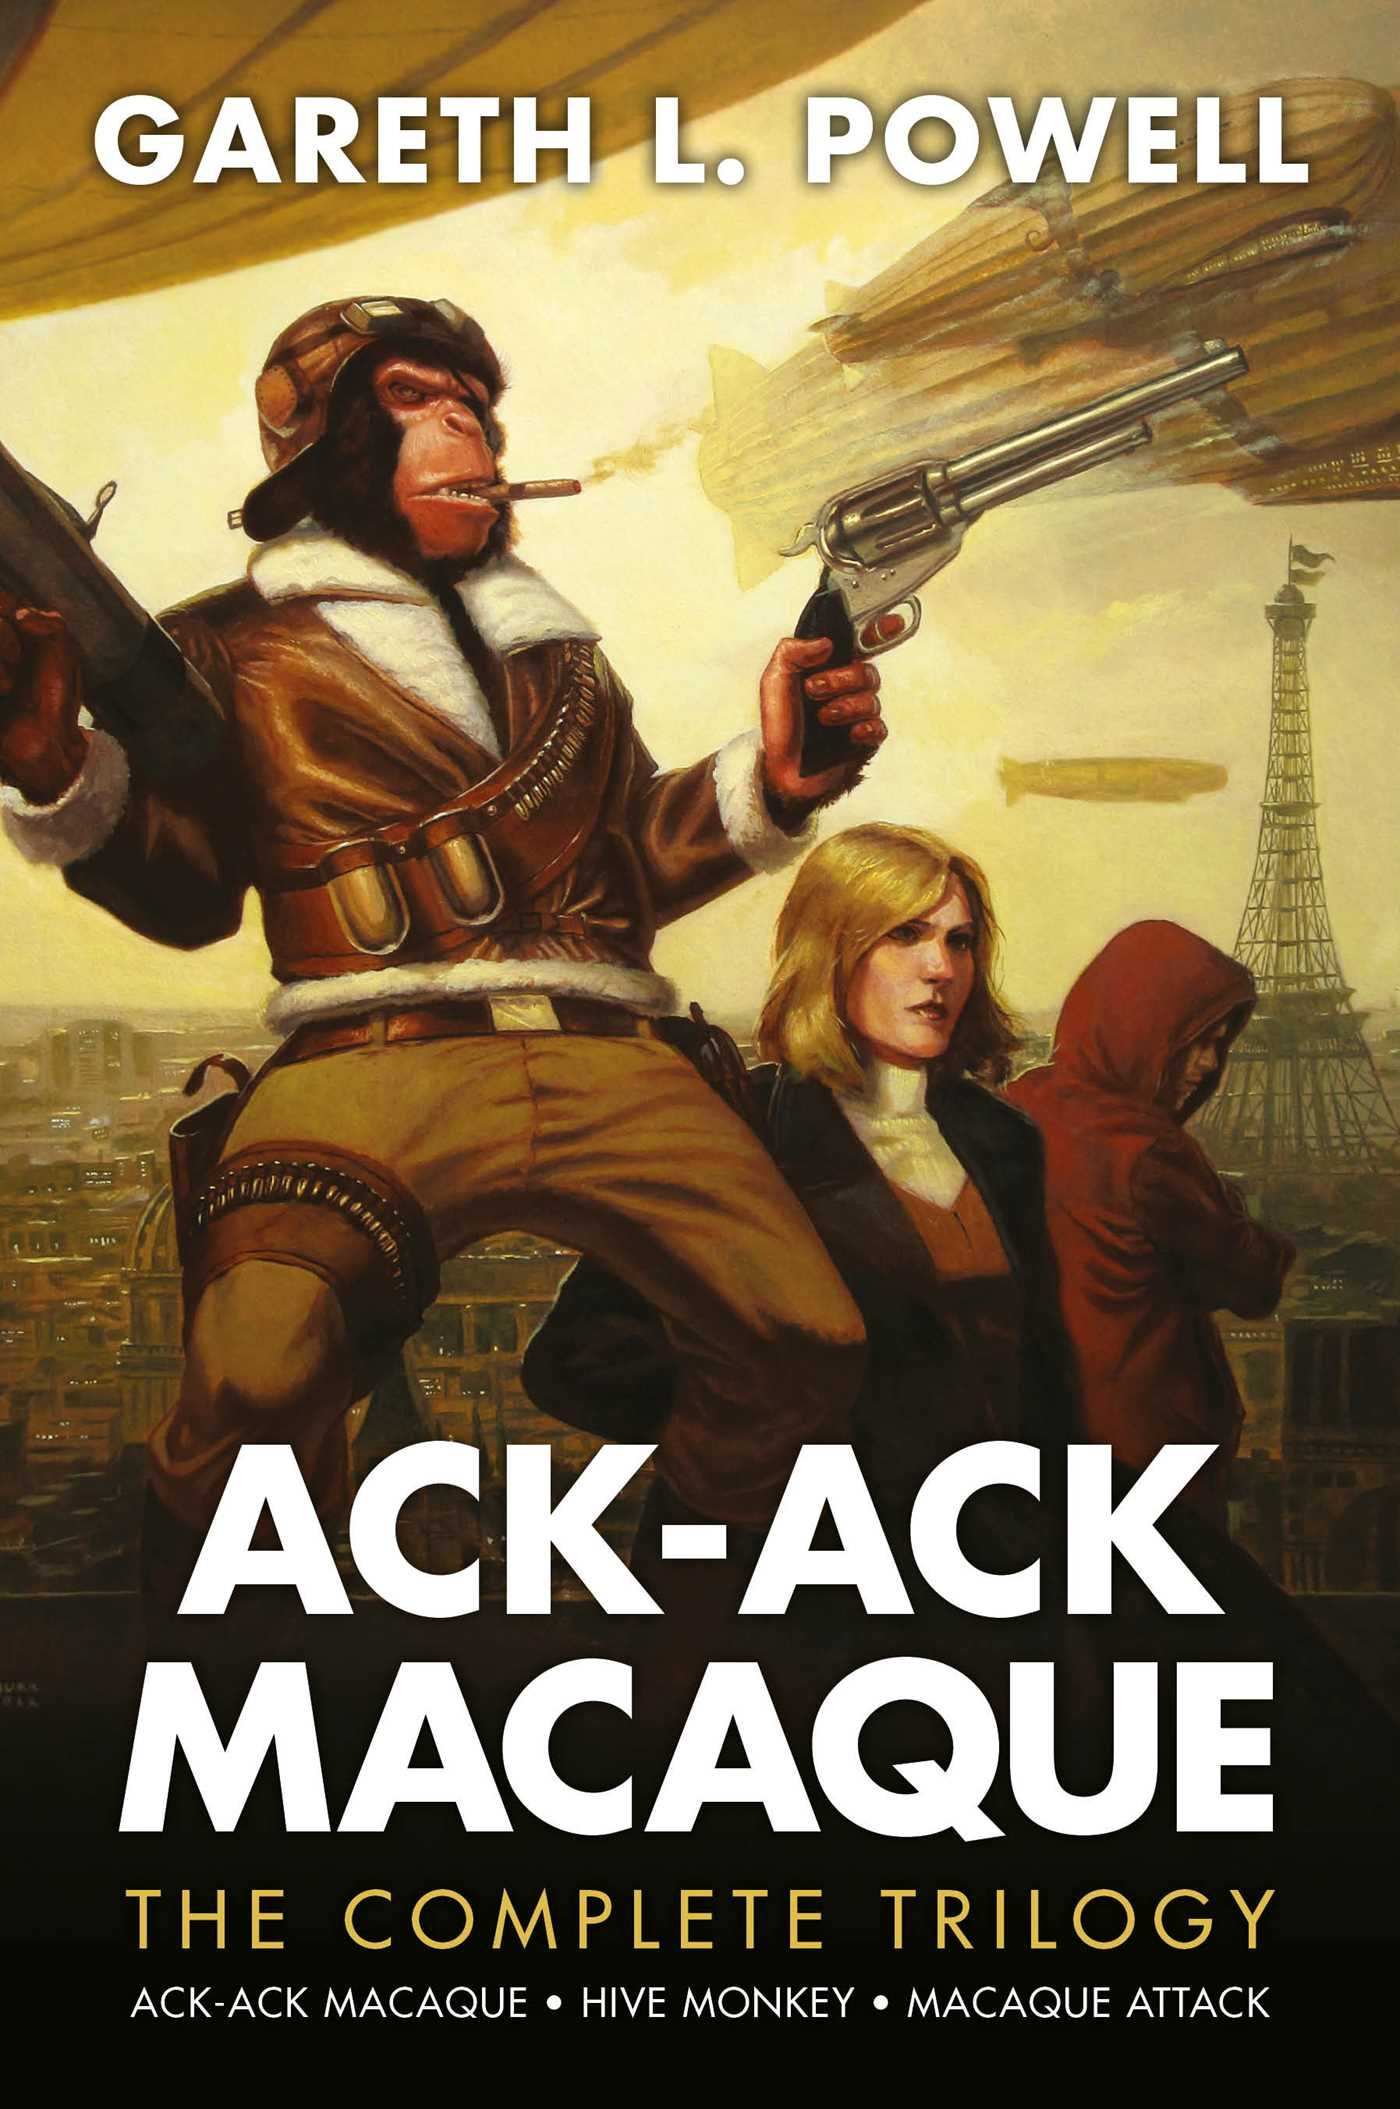 ack-ack macaque cyberpunk